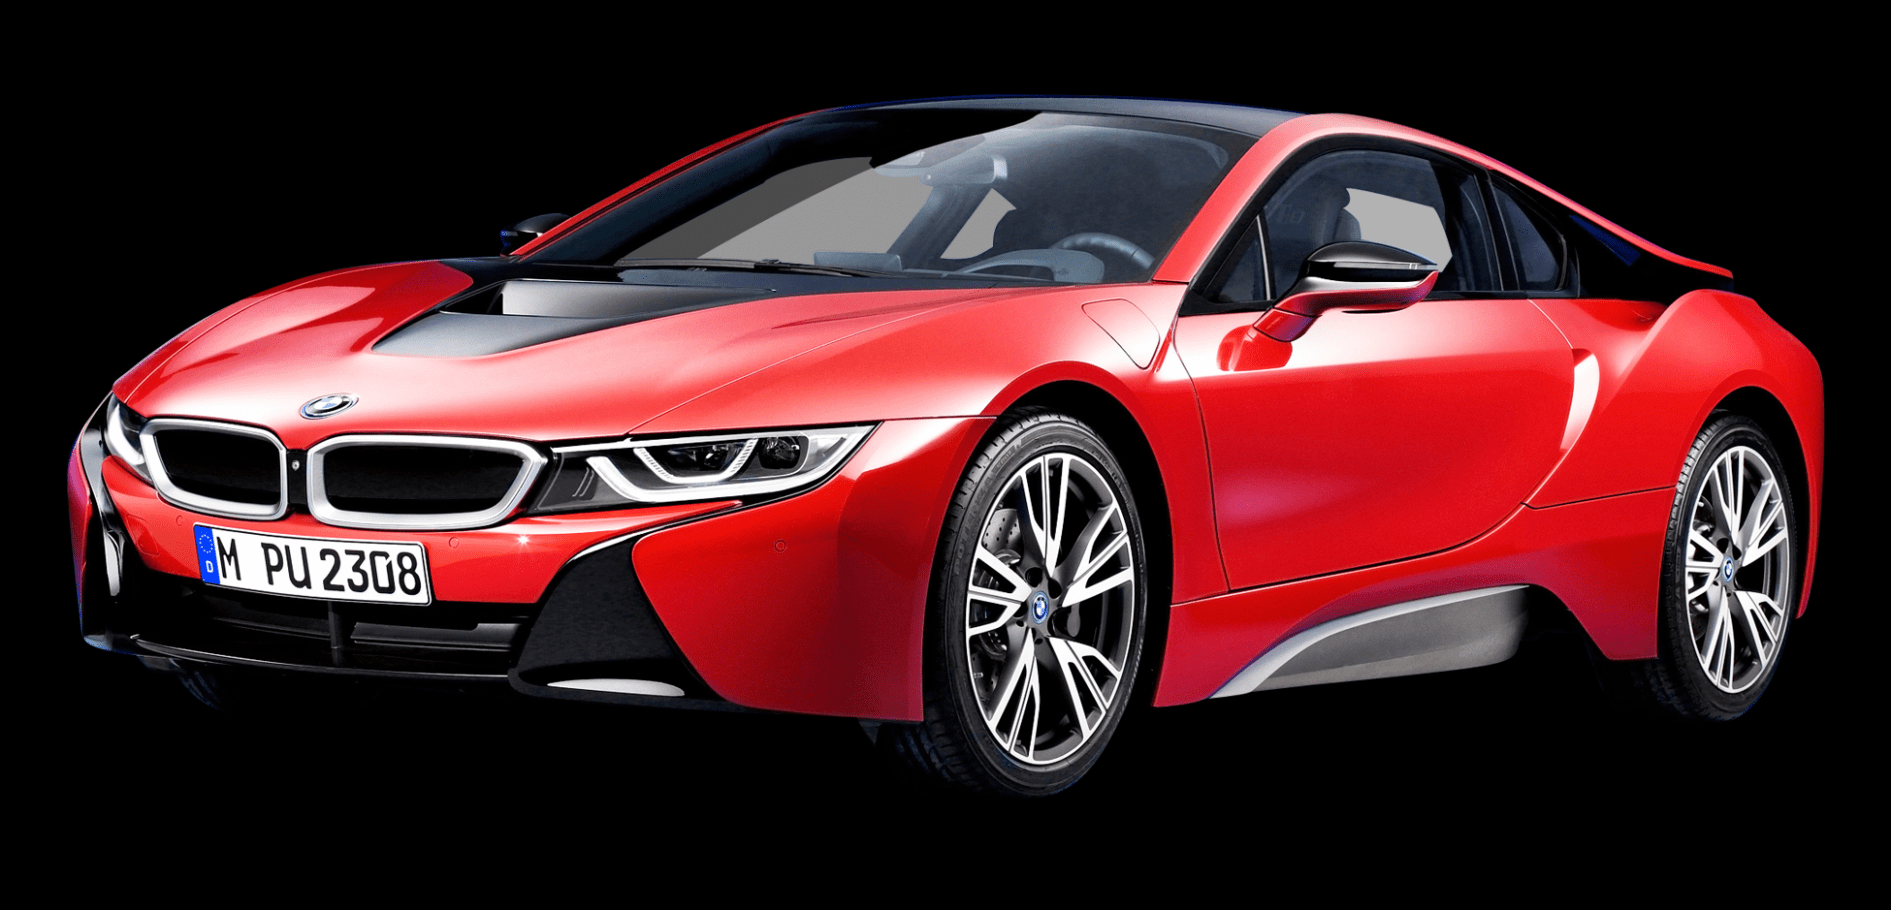 What Makes Car Pic Bmw So Addictive That You Never Want To Miss One Car Pic Bmw Https Ift Tt 2rhgqtq Car Wallpapers Car Car Pictures